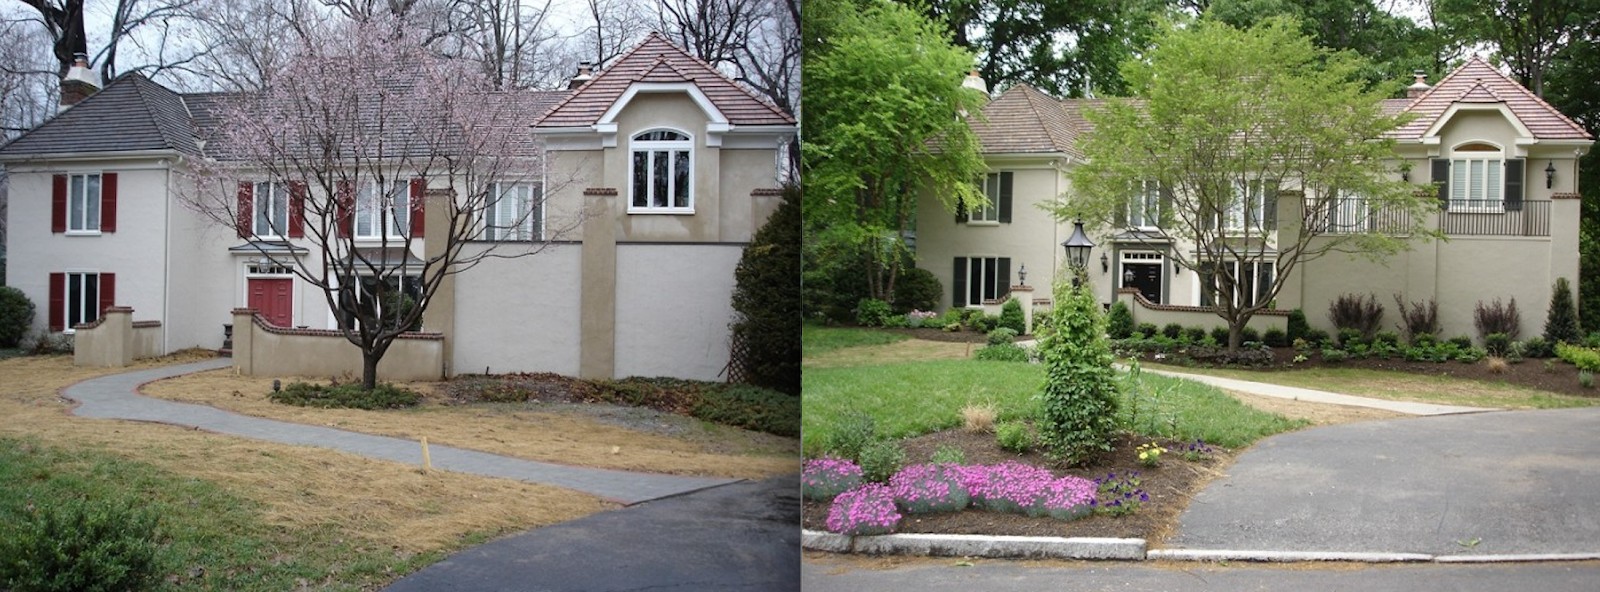 Side-by-side front yard transformation